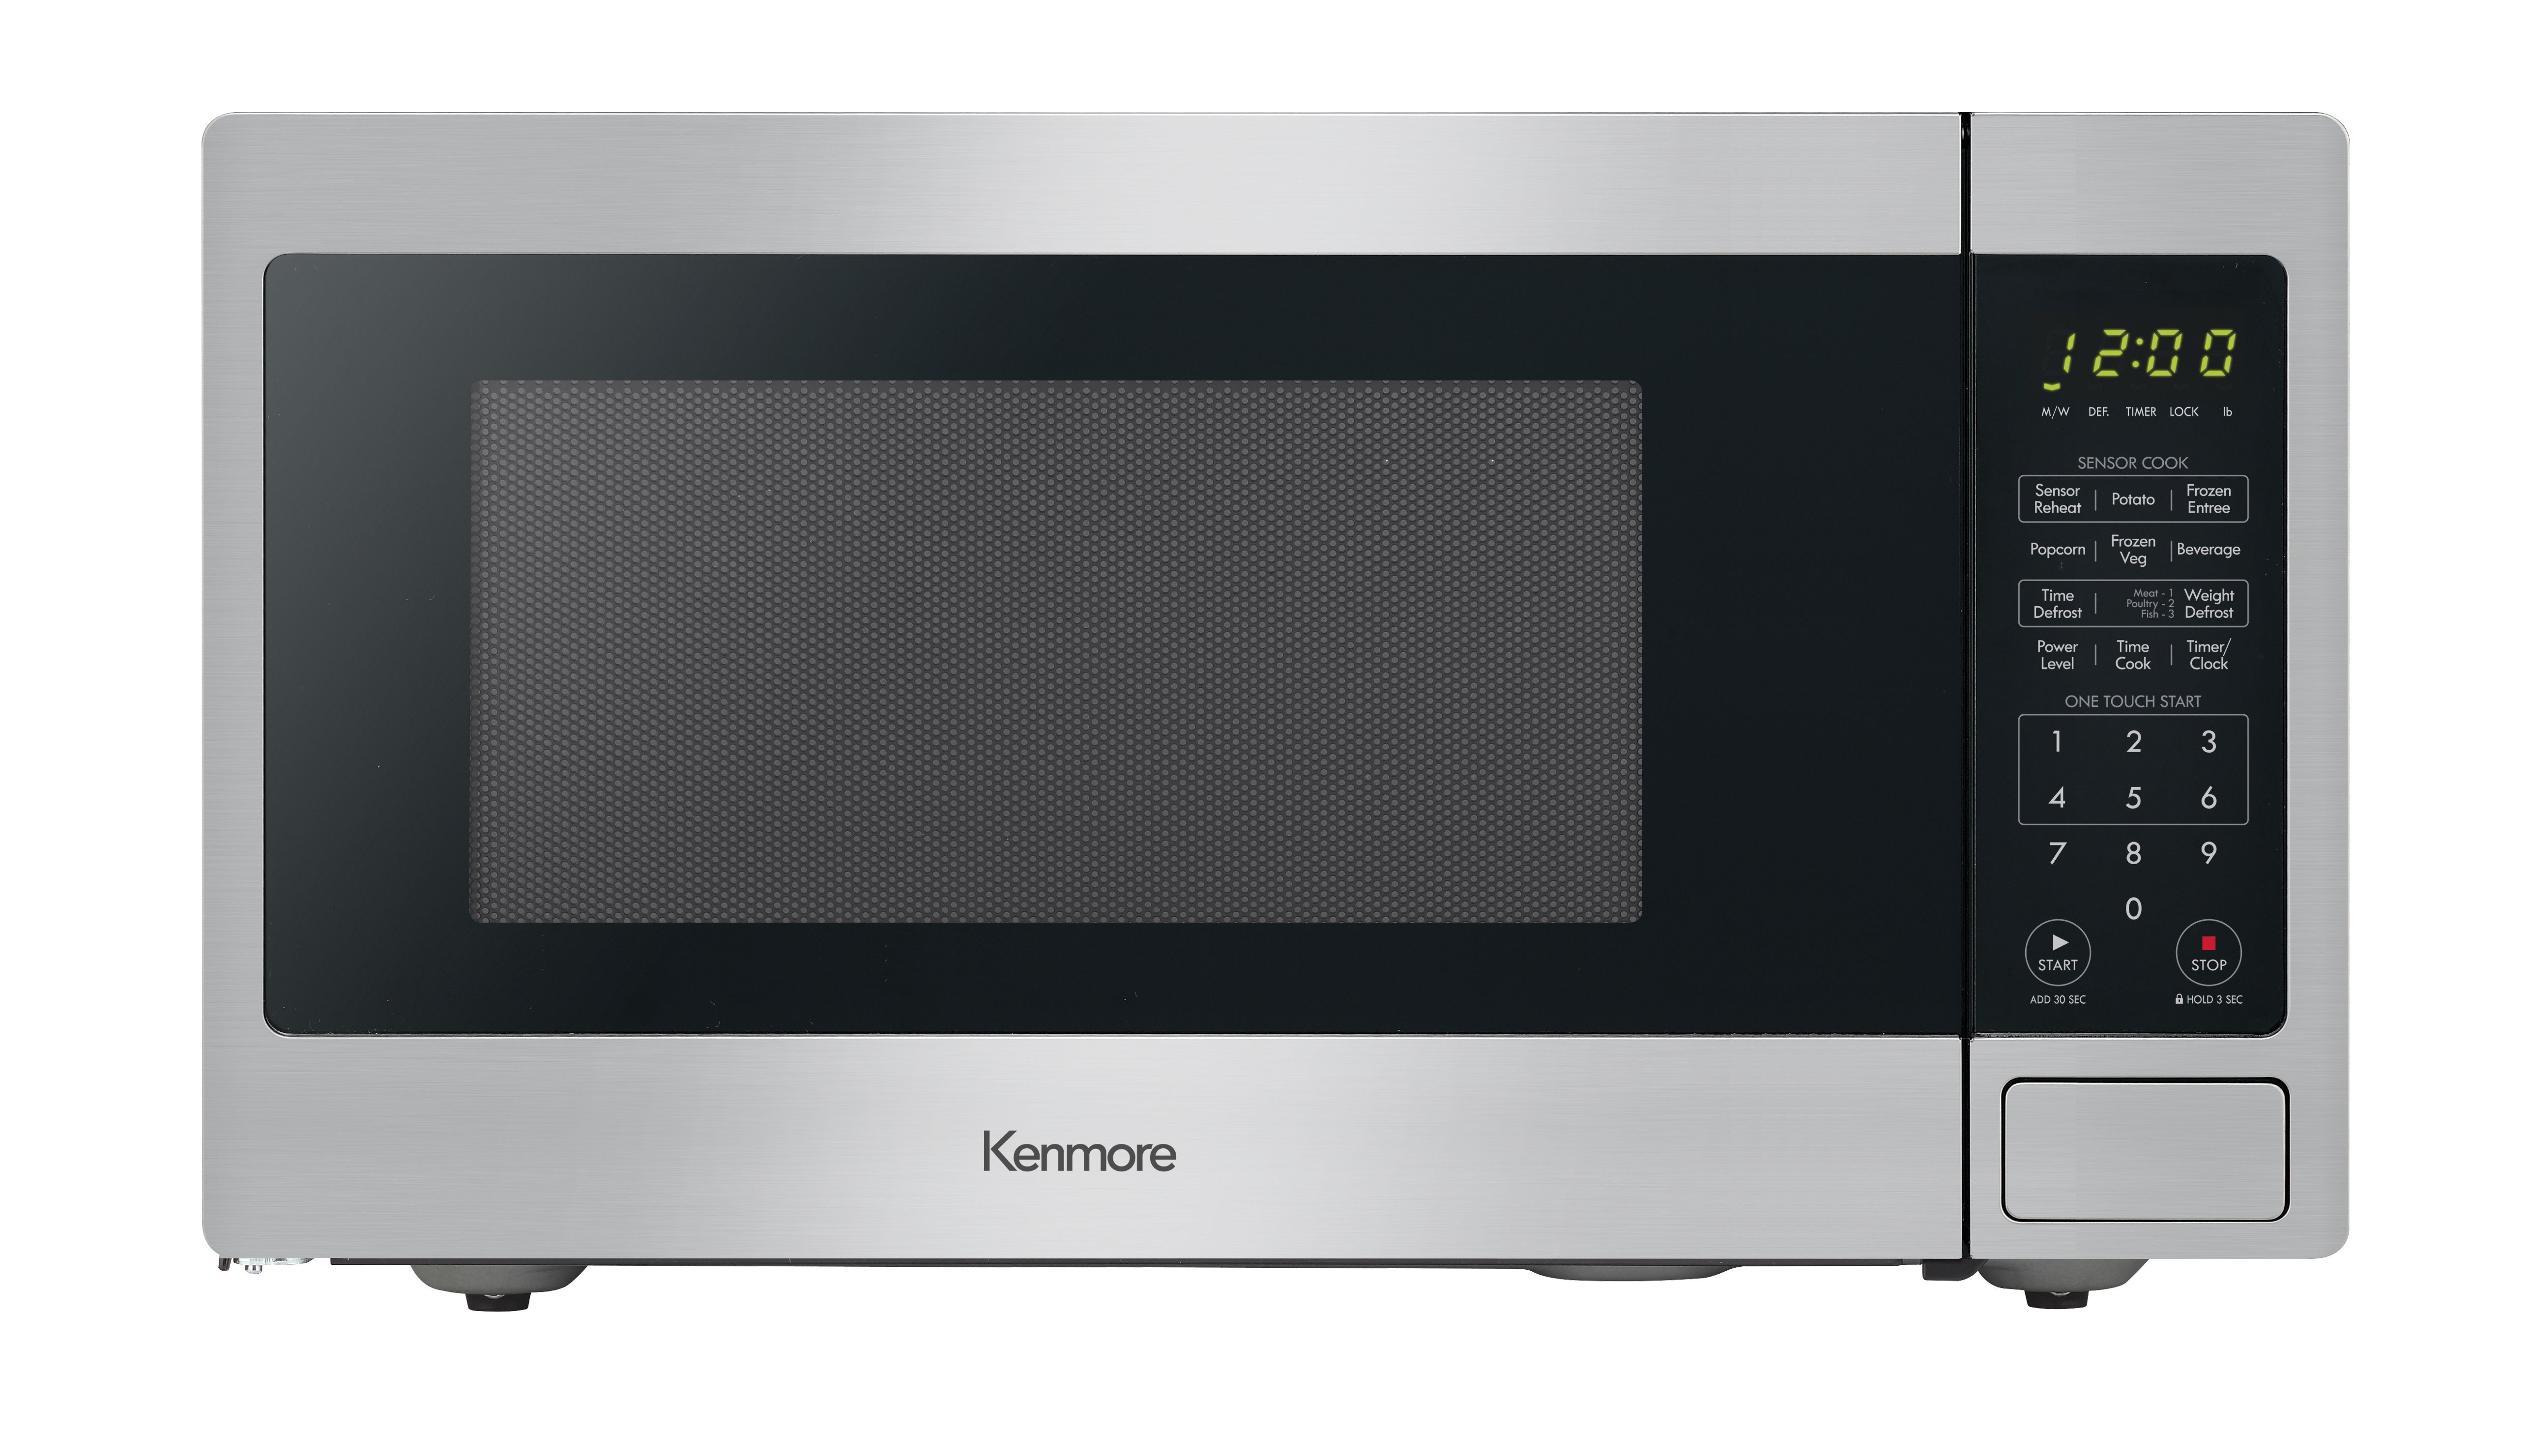 Kenmore 71313 1 3 Cu Ft Countertop Microwave Oven Stainless Steel Stainless Steel Countertop Microwave Kenmore Microwave